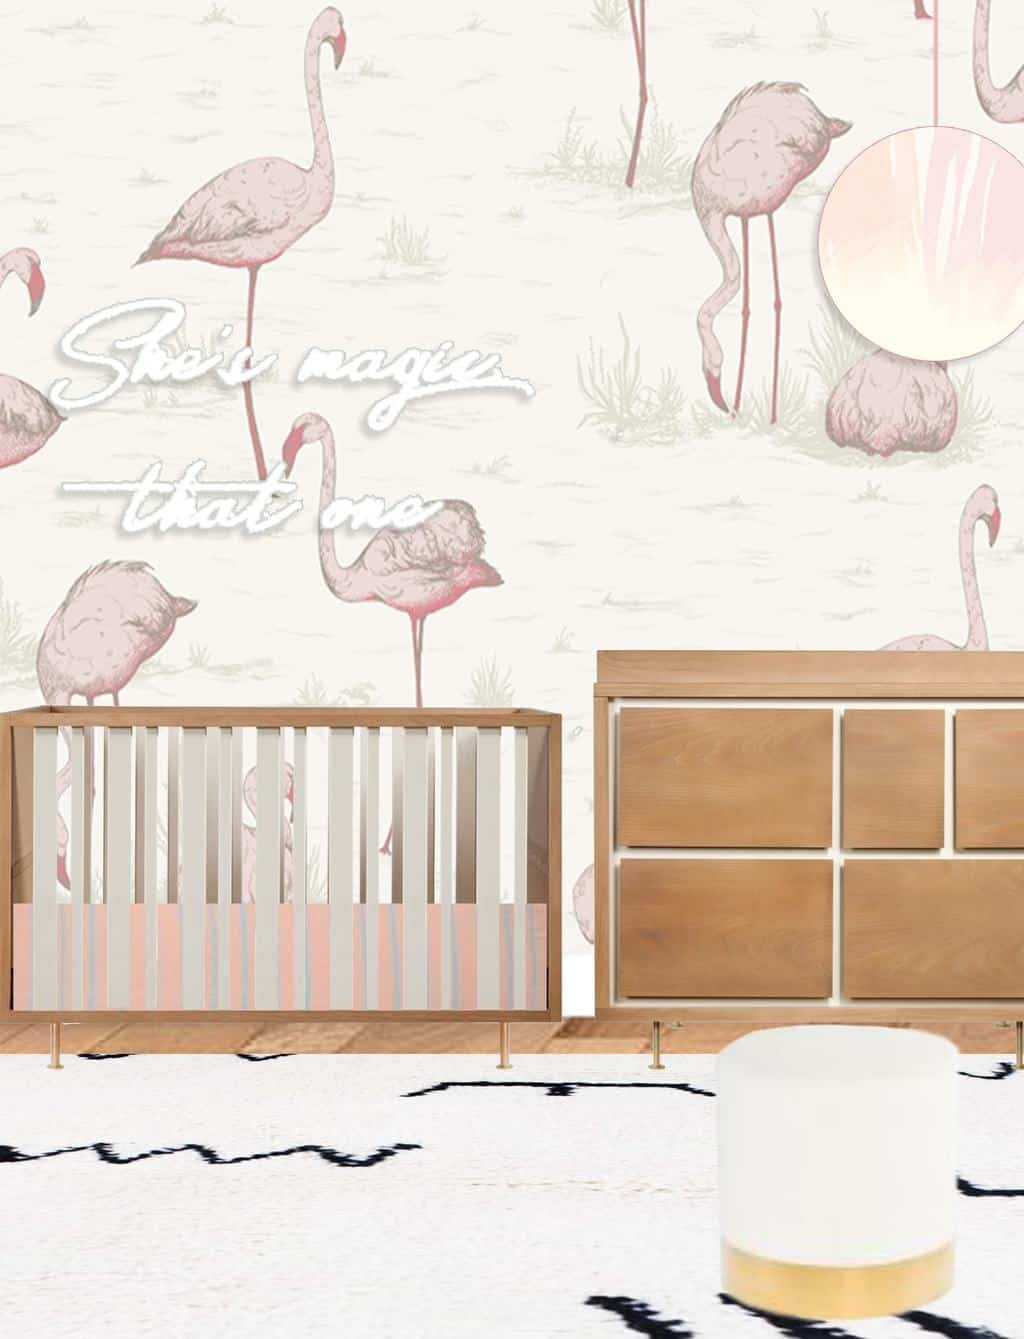 Little Sugar & Cloth: Our Nursery Room Design Plan! by top Houston lifestyle blogger Ashley Rose of Sugar & Cloth